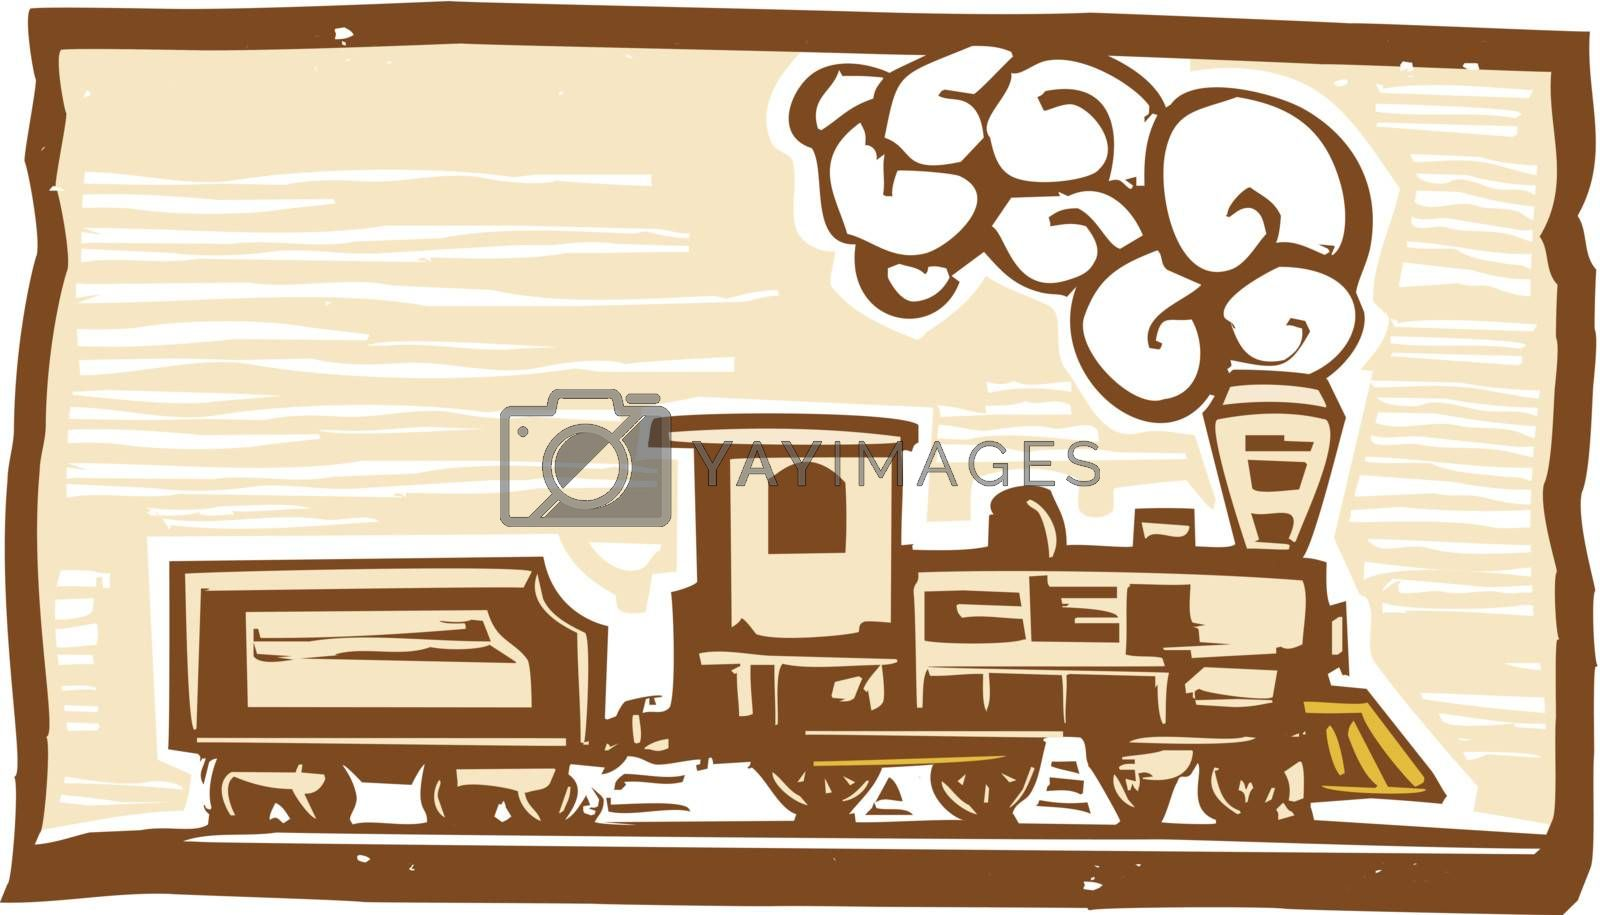 Woodcut style image of an early locomotive train.